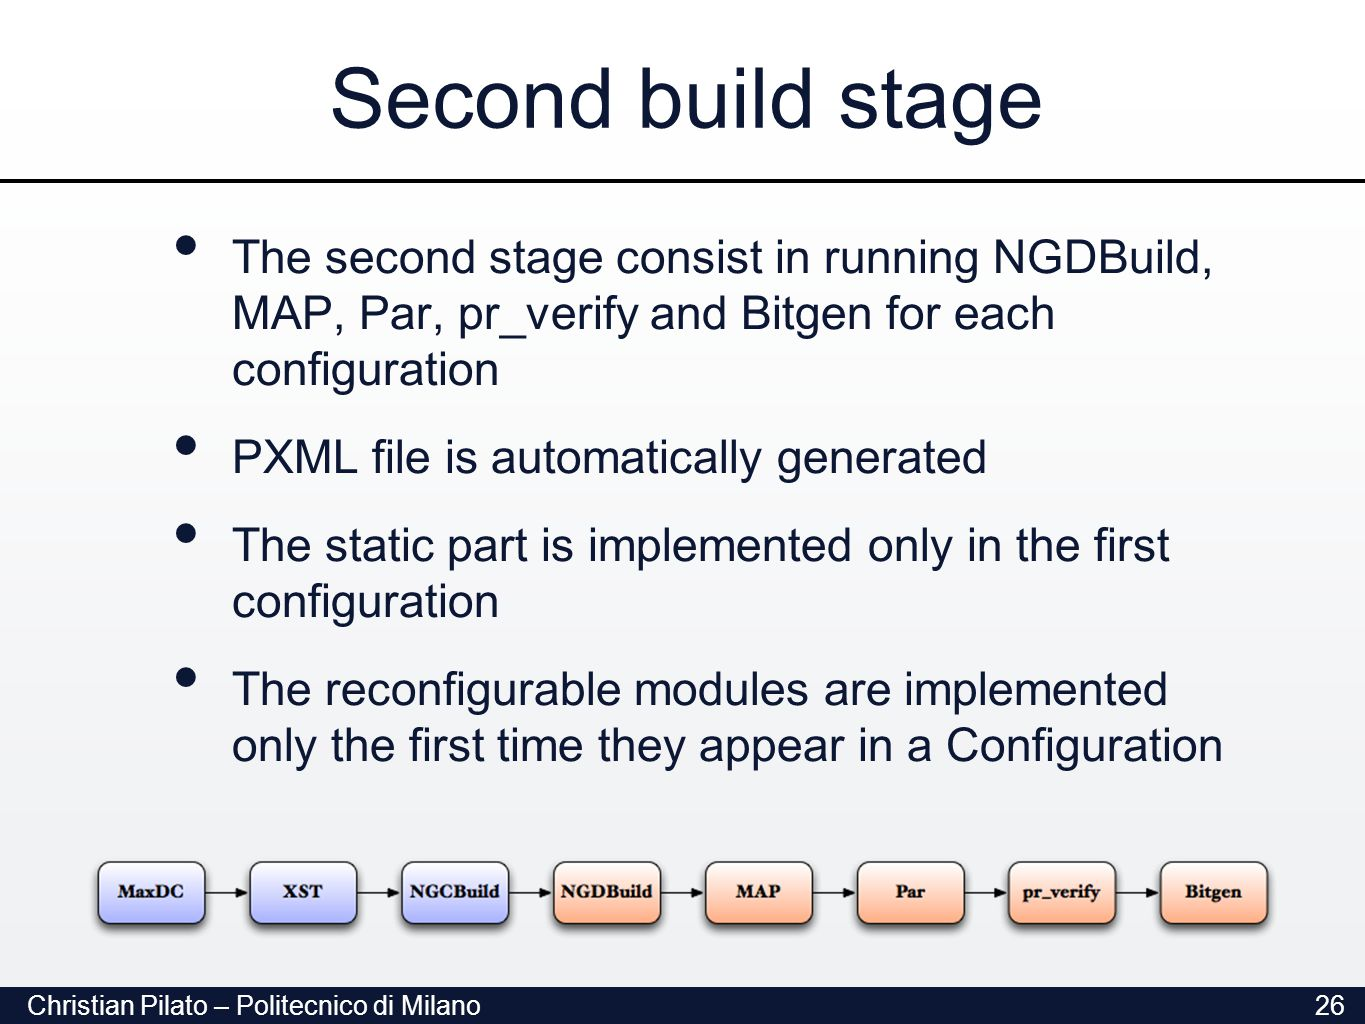 Christian Pilato – Politecnico di Milano26 Second build stage The second stage consist in running NGDBuild, MAP, Par, pr_verify and Bitgen for each configuration PXML file is automatically generated The static part is implemented only in the first configuration The reconfigurable modules are implemented only the first time they appear in a Configuration